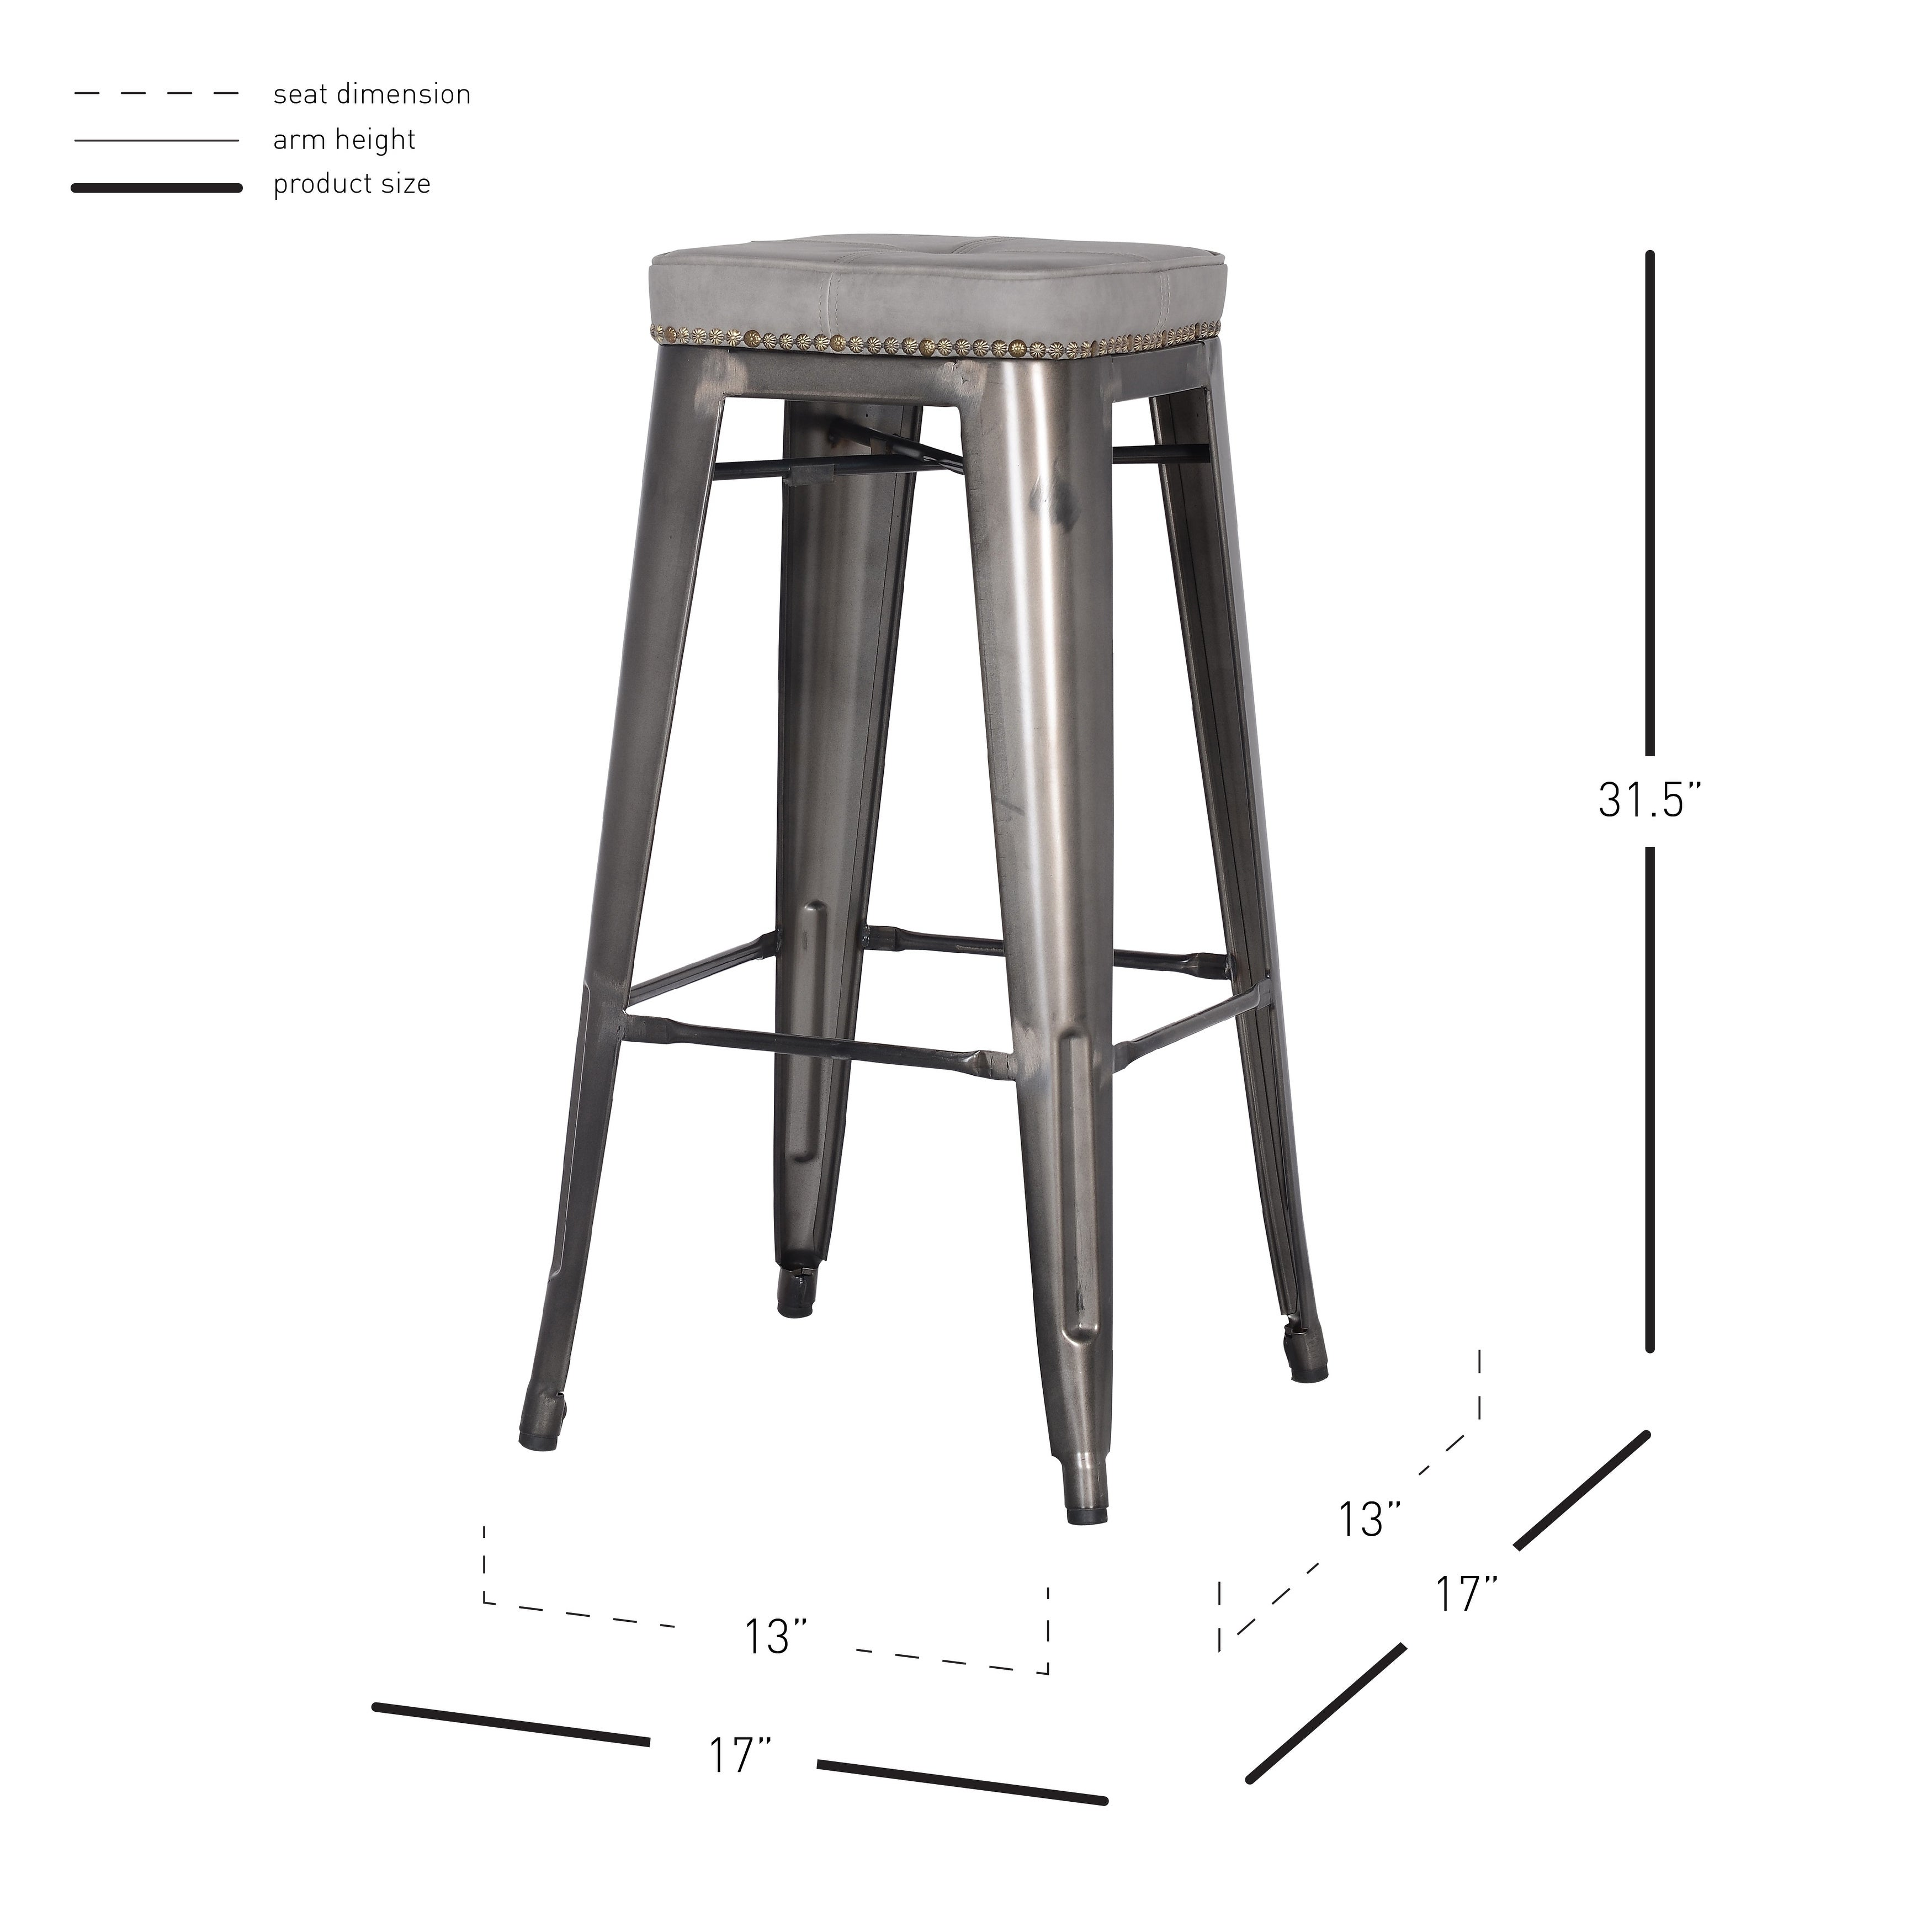 Brilliant Metropolis Pu Leather Metal Backless Bar Stool Set Of 4 Caraccident5 Cool Chair Designs And Ideas Caraccident5Info